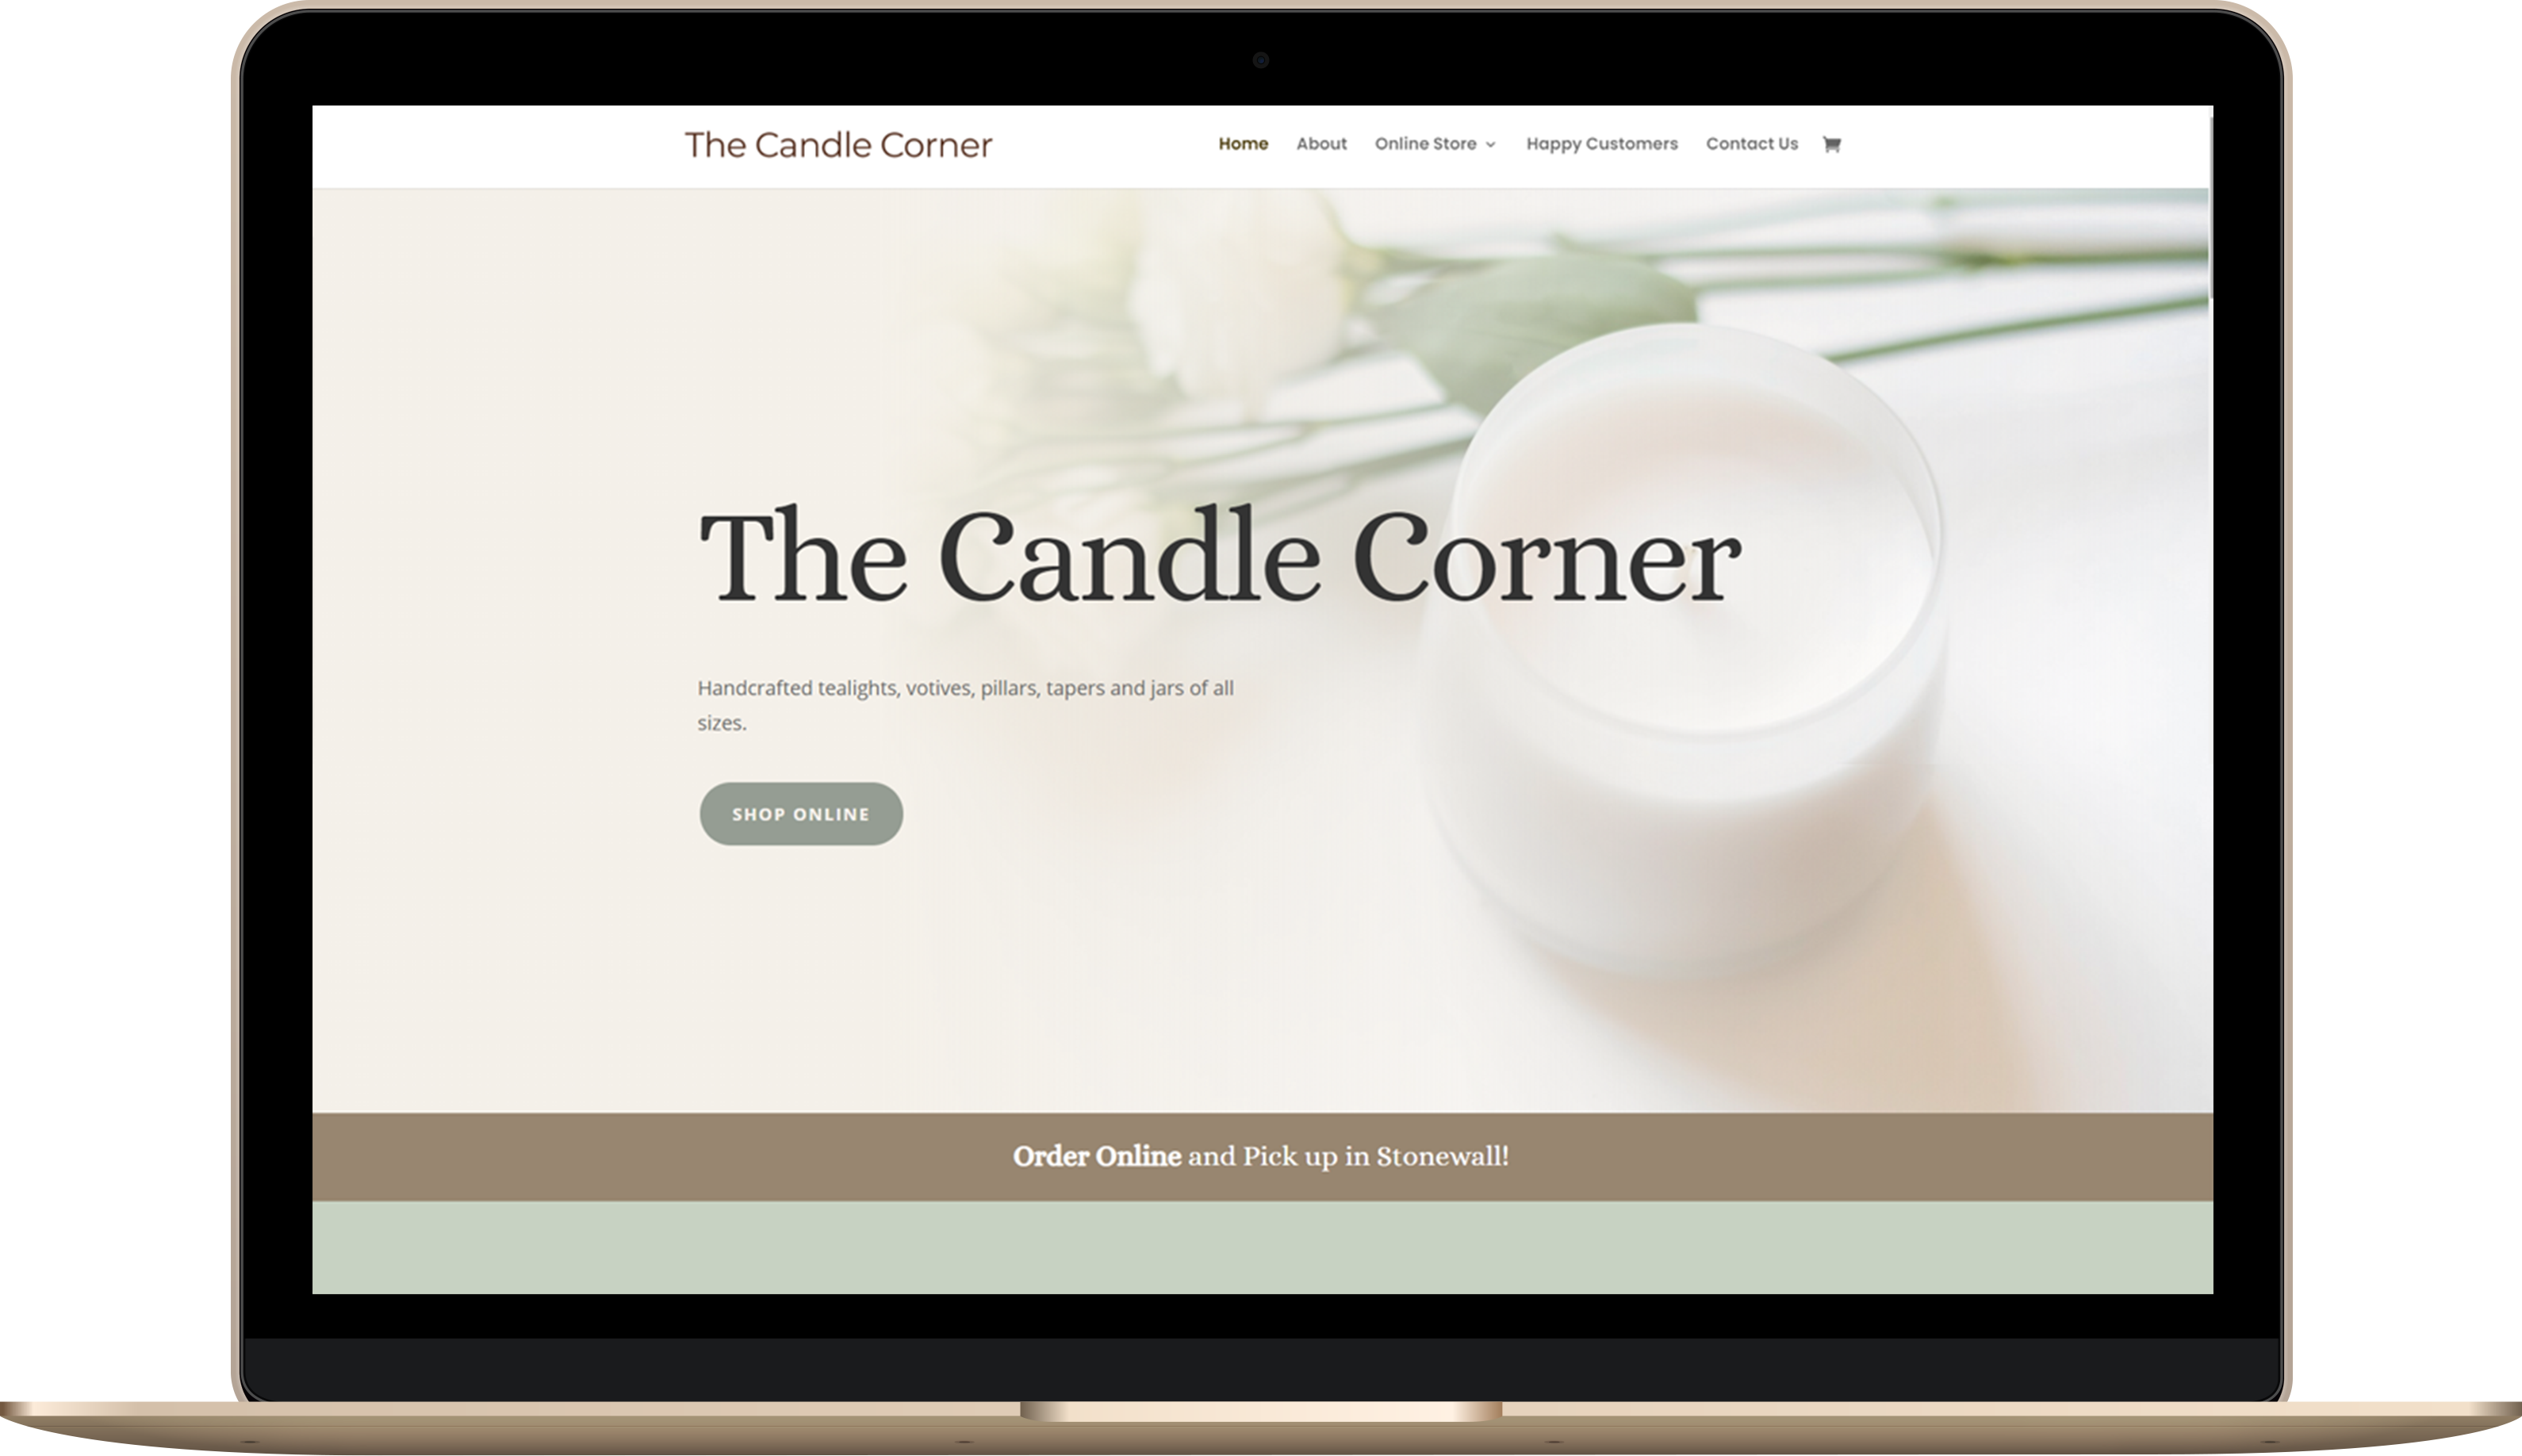 e-commerce website design in stonewall, MB